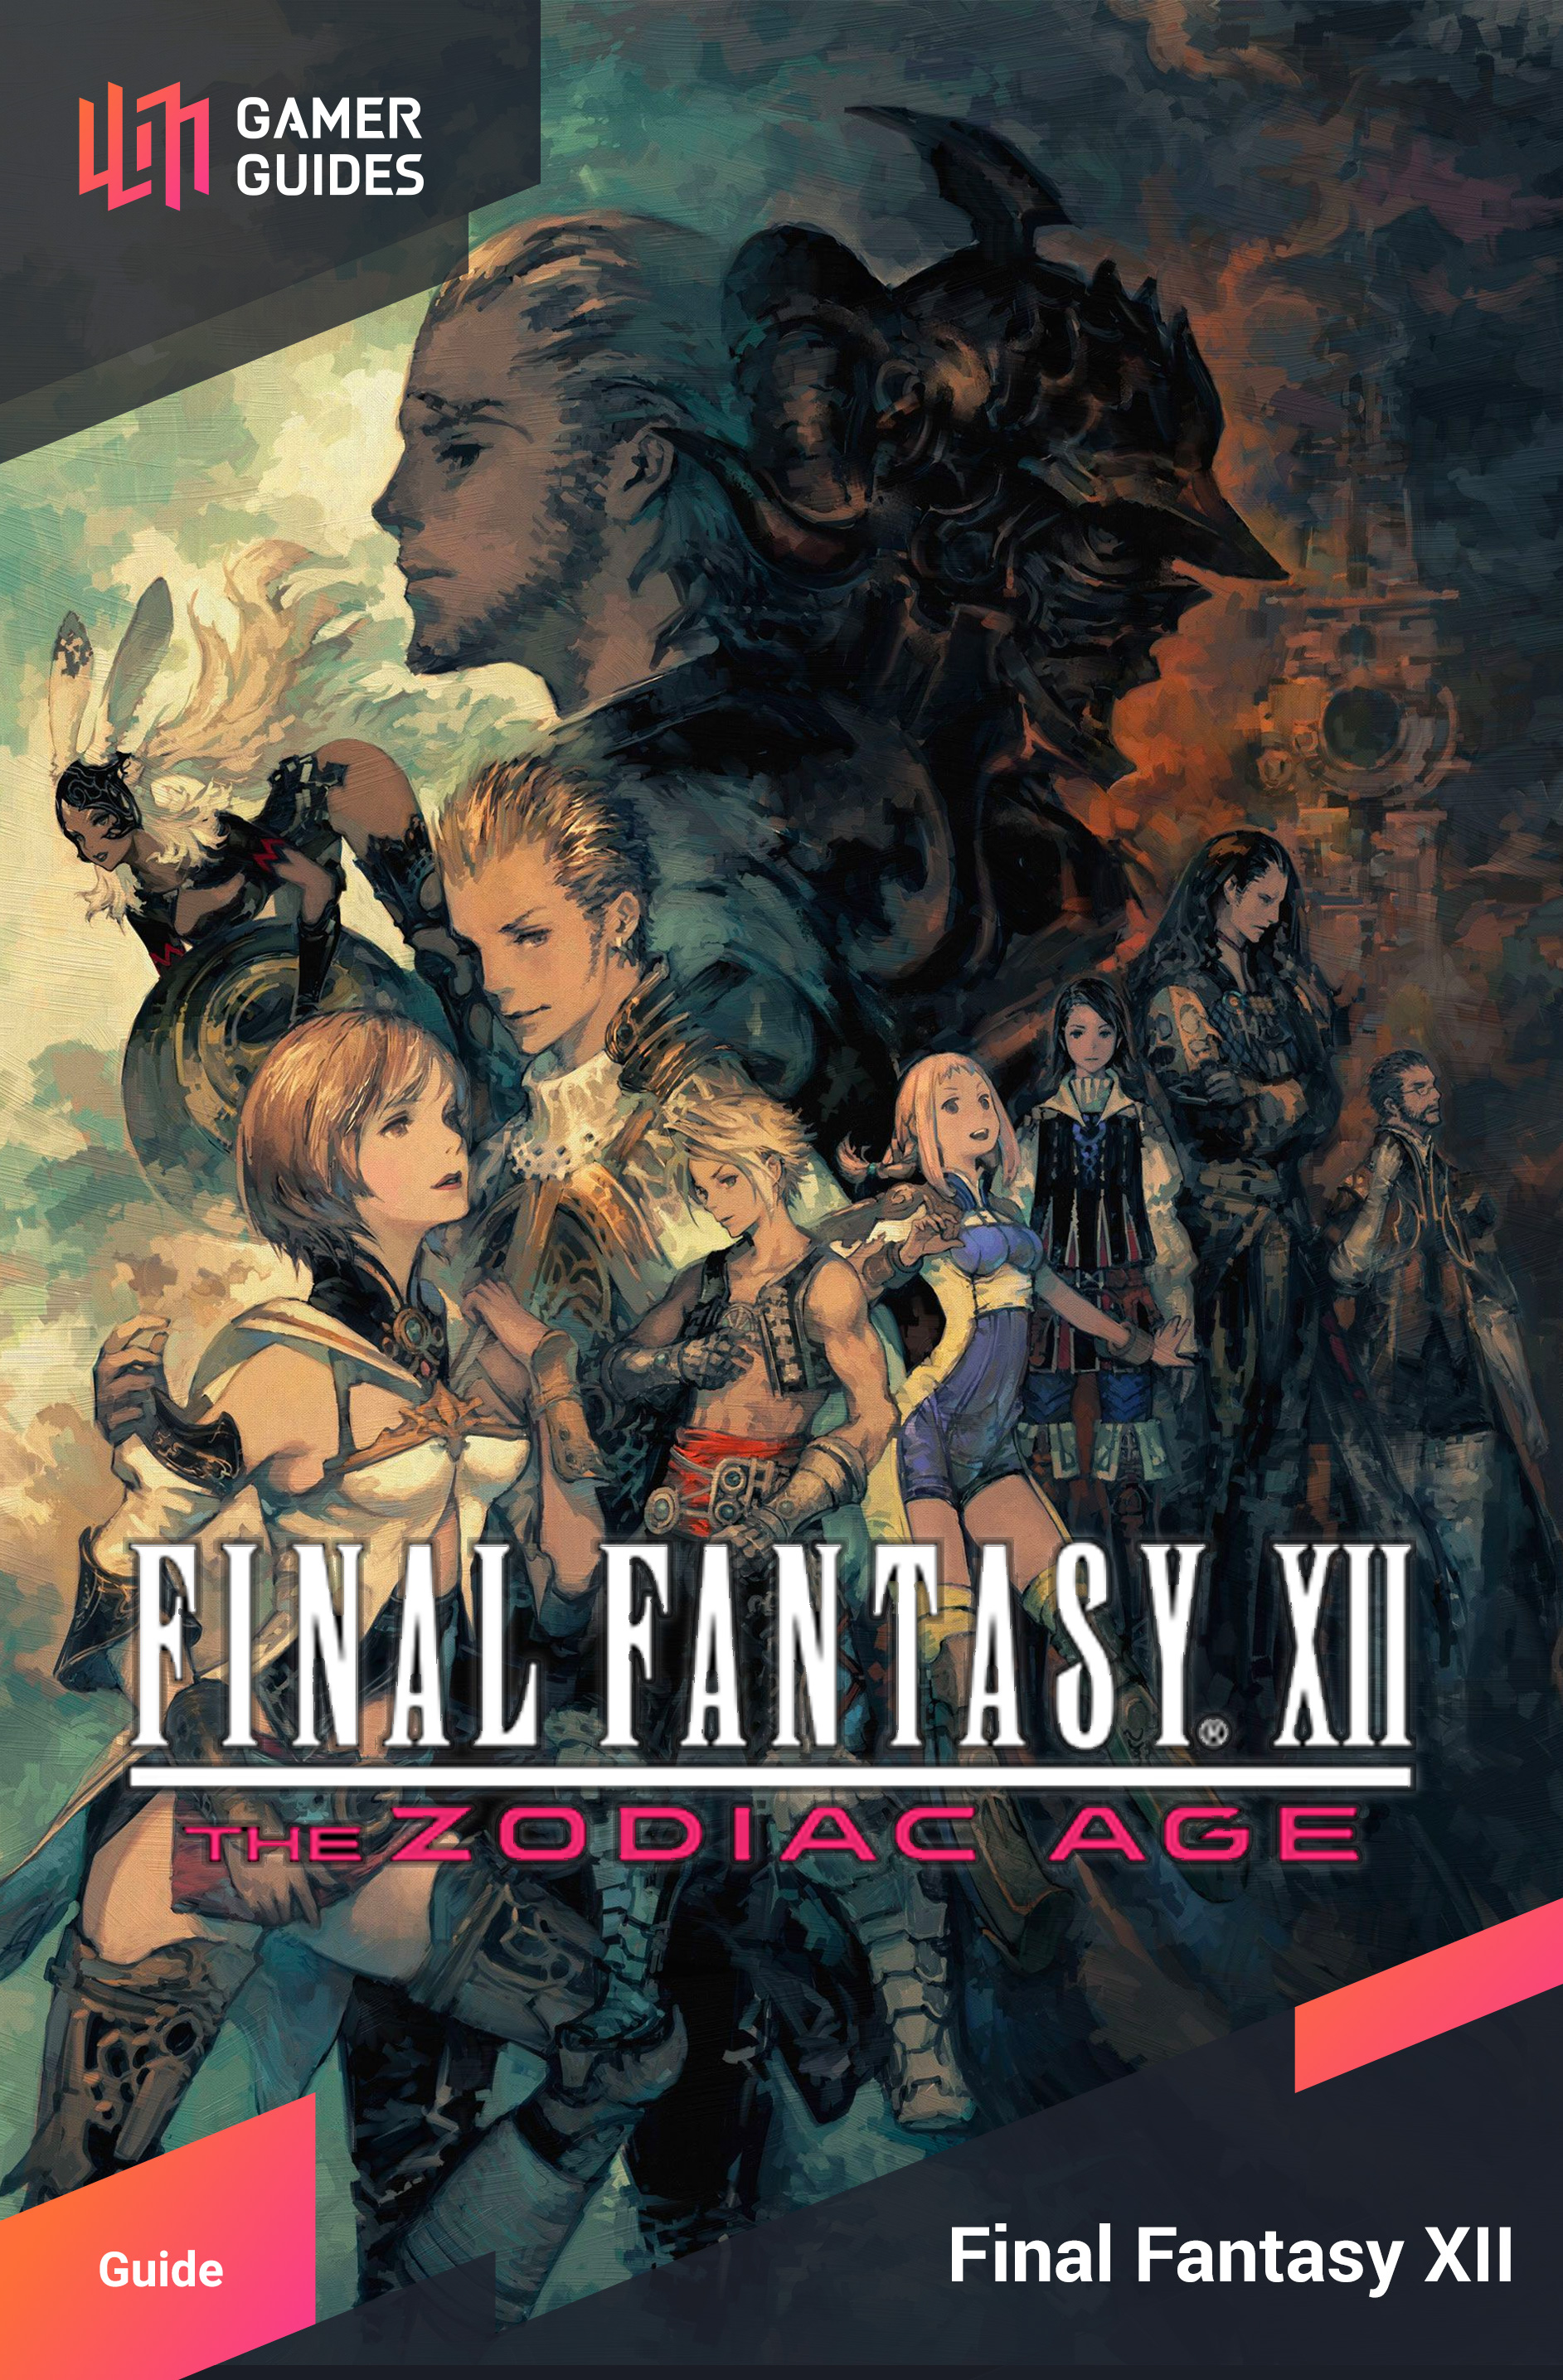 Final Fantasy XII: The Zodiac Age | Gamer Guides